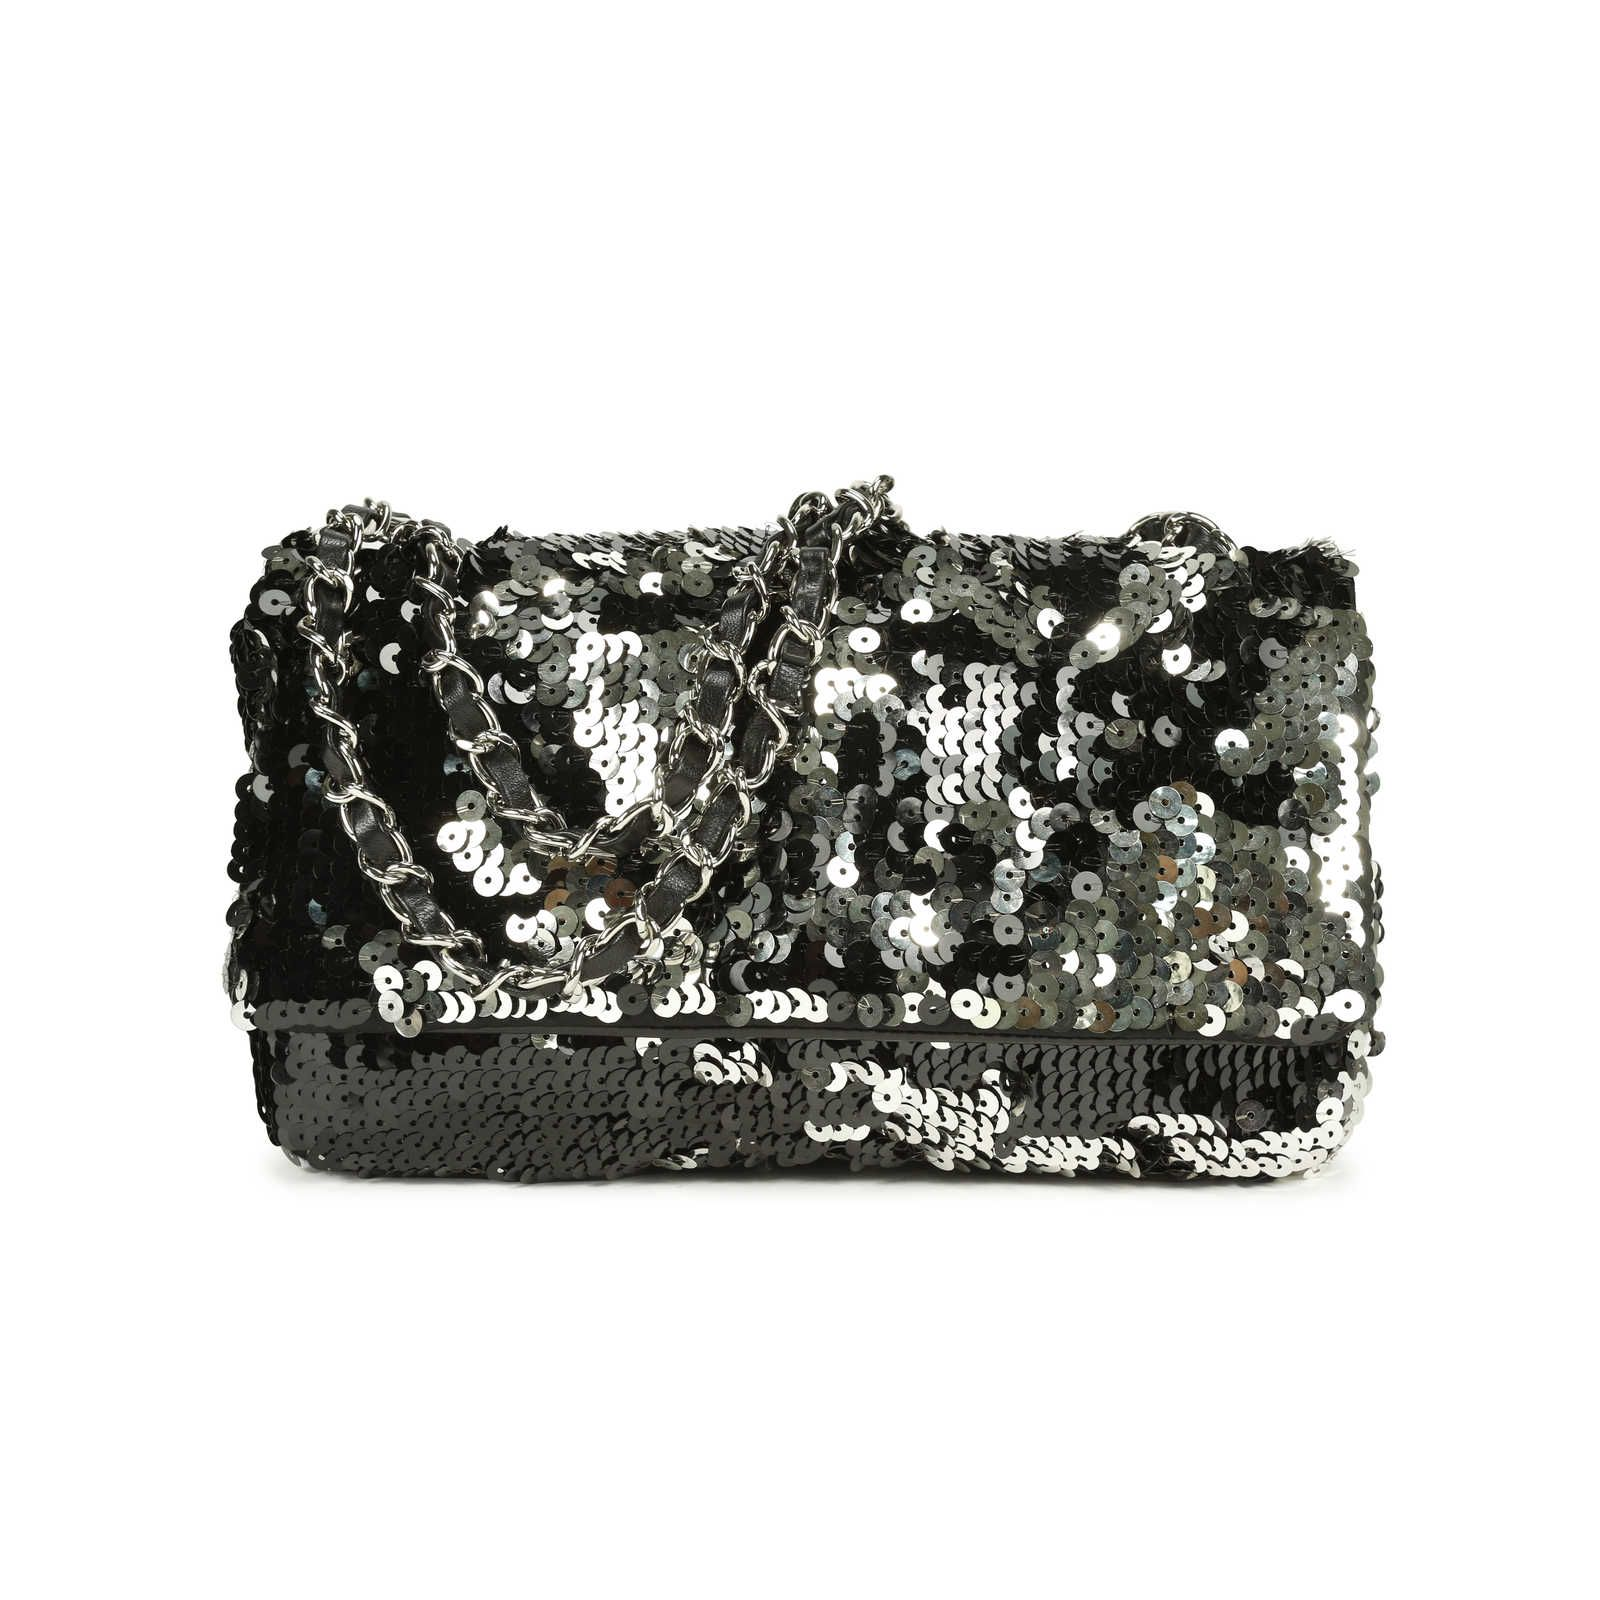 bcb9c1fd0119 A rare, limited edition piece, this Summer Night Flap Bag from Chanel  features the